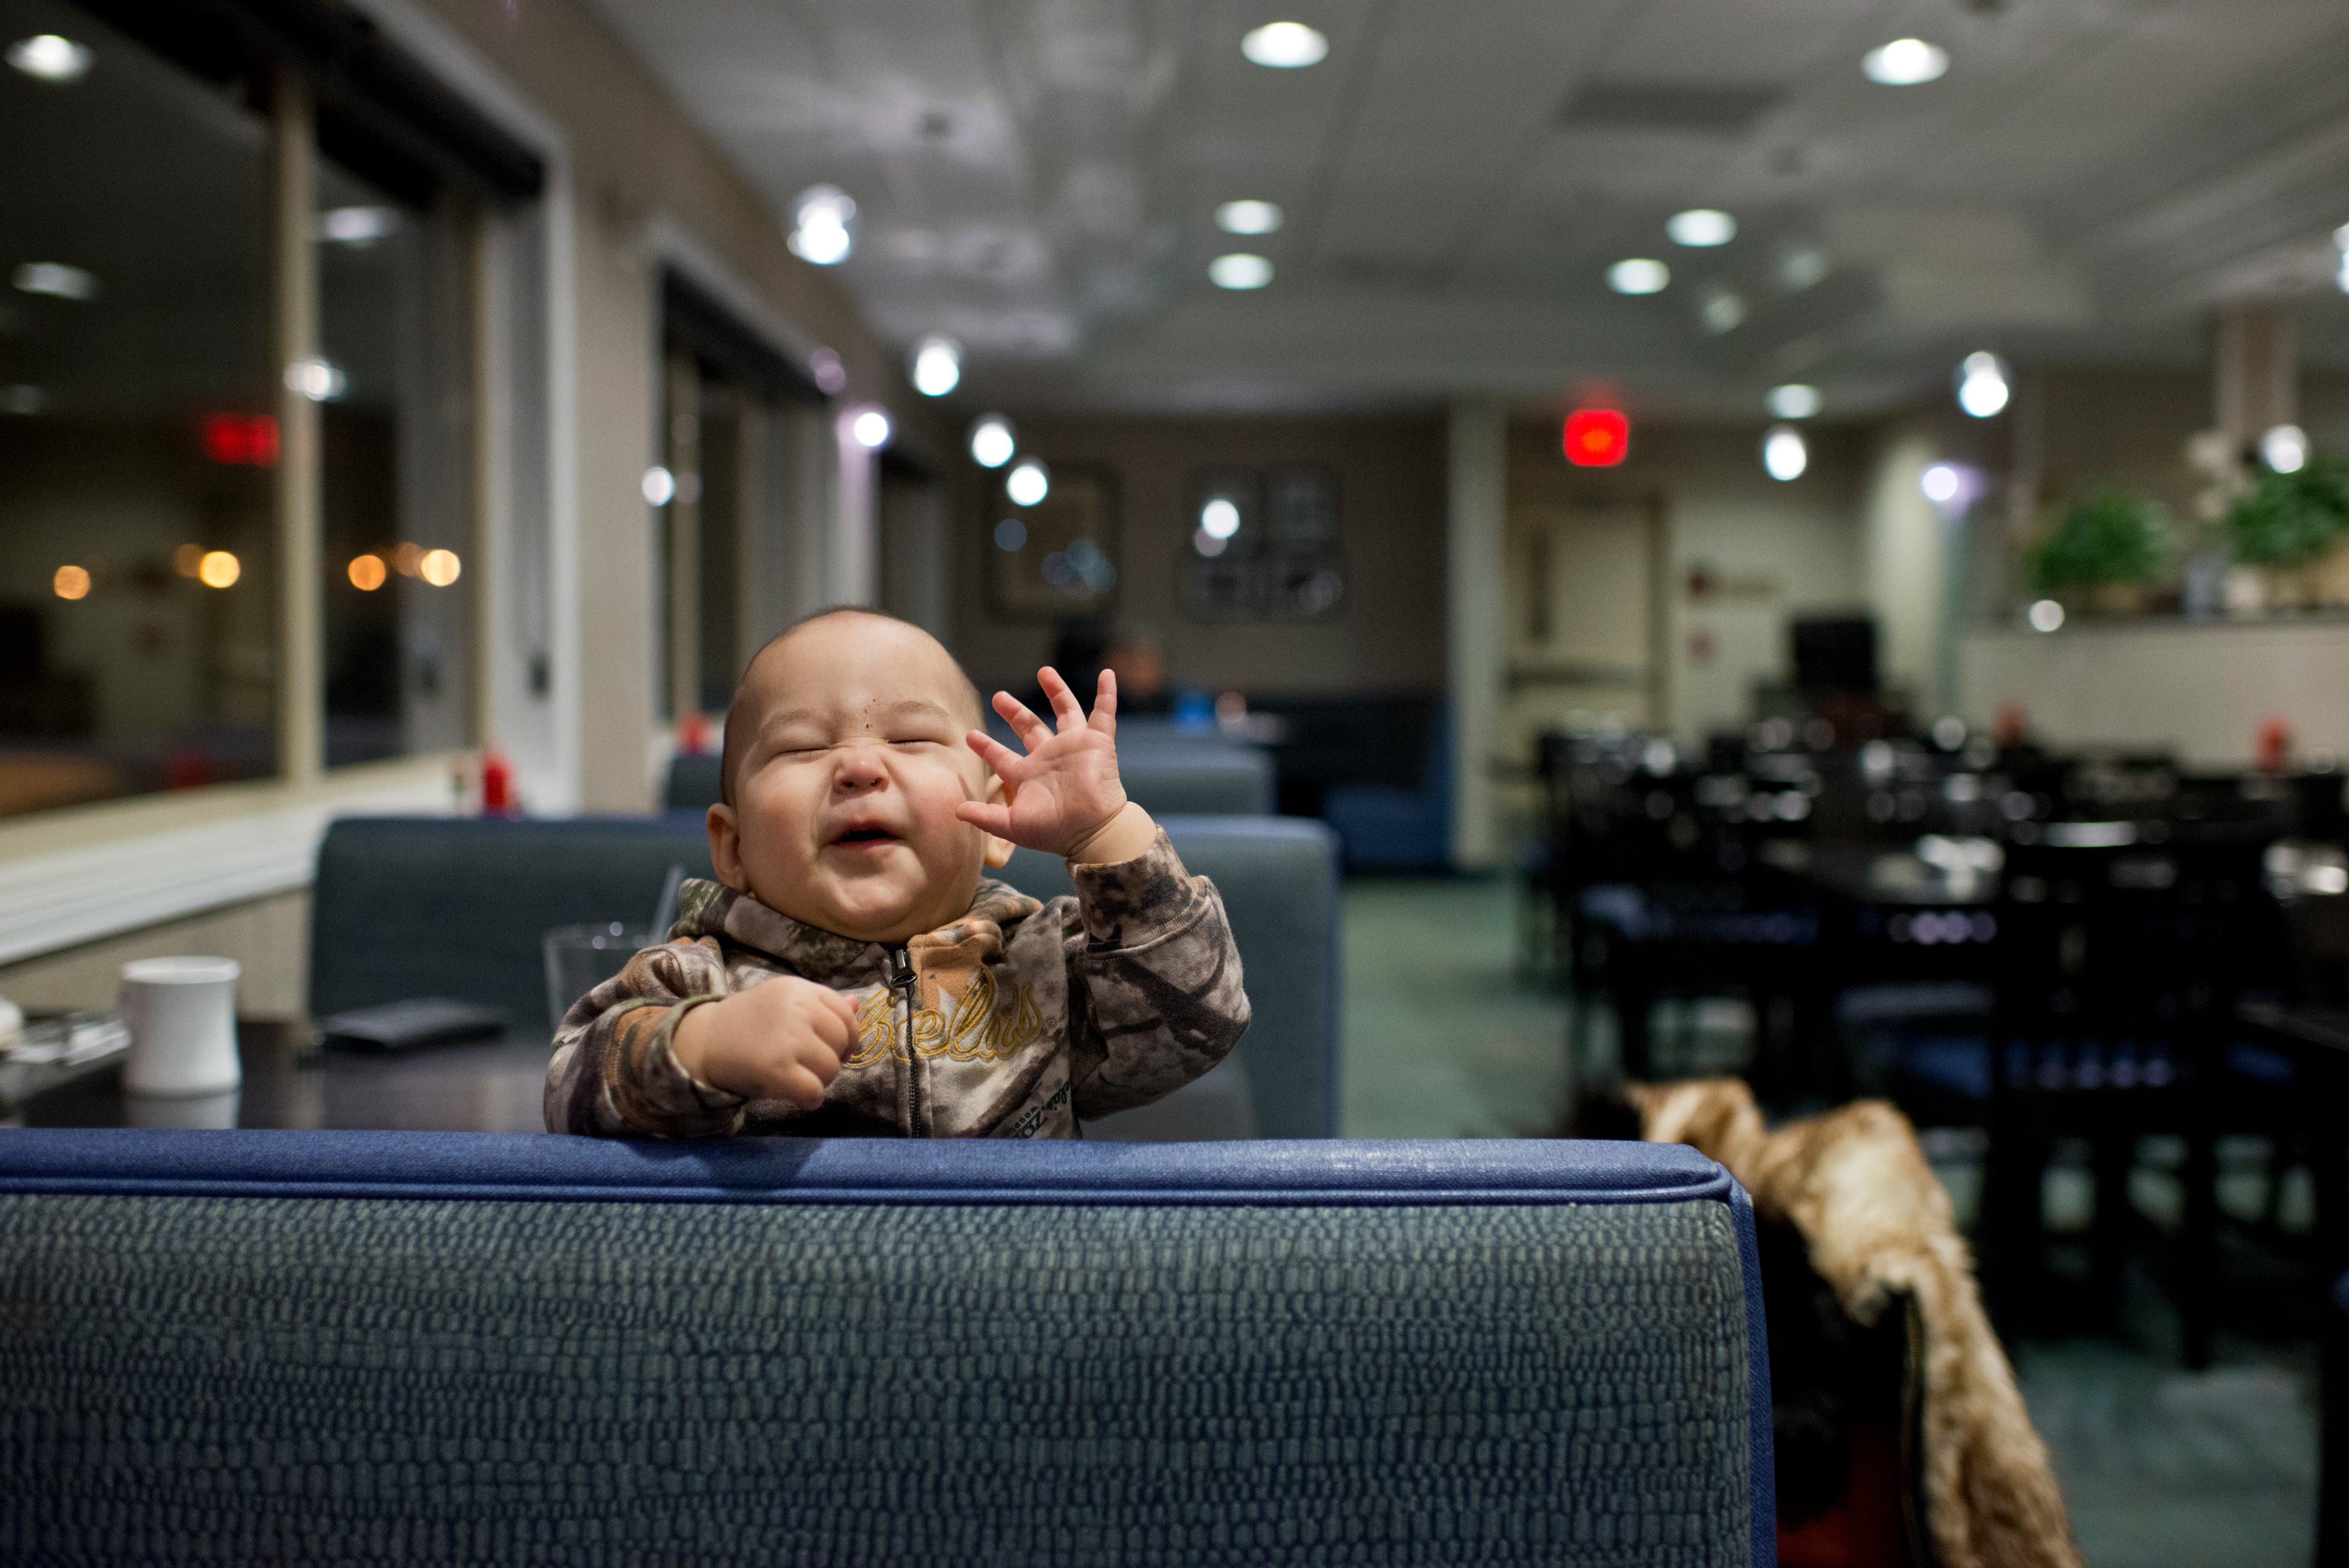 Nine-month-old Dillon Patkotak plays with his mom, Flora Patkotak while the family dined at Niggivikput, a restaurant in the Top of the World Hotel. Voters approved changing the name of the city of Barrow to Utqiagvik in October, a change which went into effect on December 1. In Alaska's northernmost city, however, residents remain divided about whether they name should've changed at all, whether the process was hurried, and whether the Utqiagvik is even the proper Inupiaq place name. Photographed on Thursday, December 15, 2016. (Marc Lester / Alaska Dispatch News)